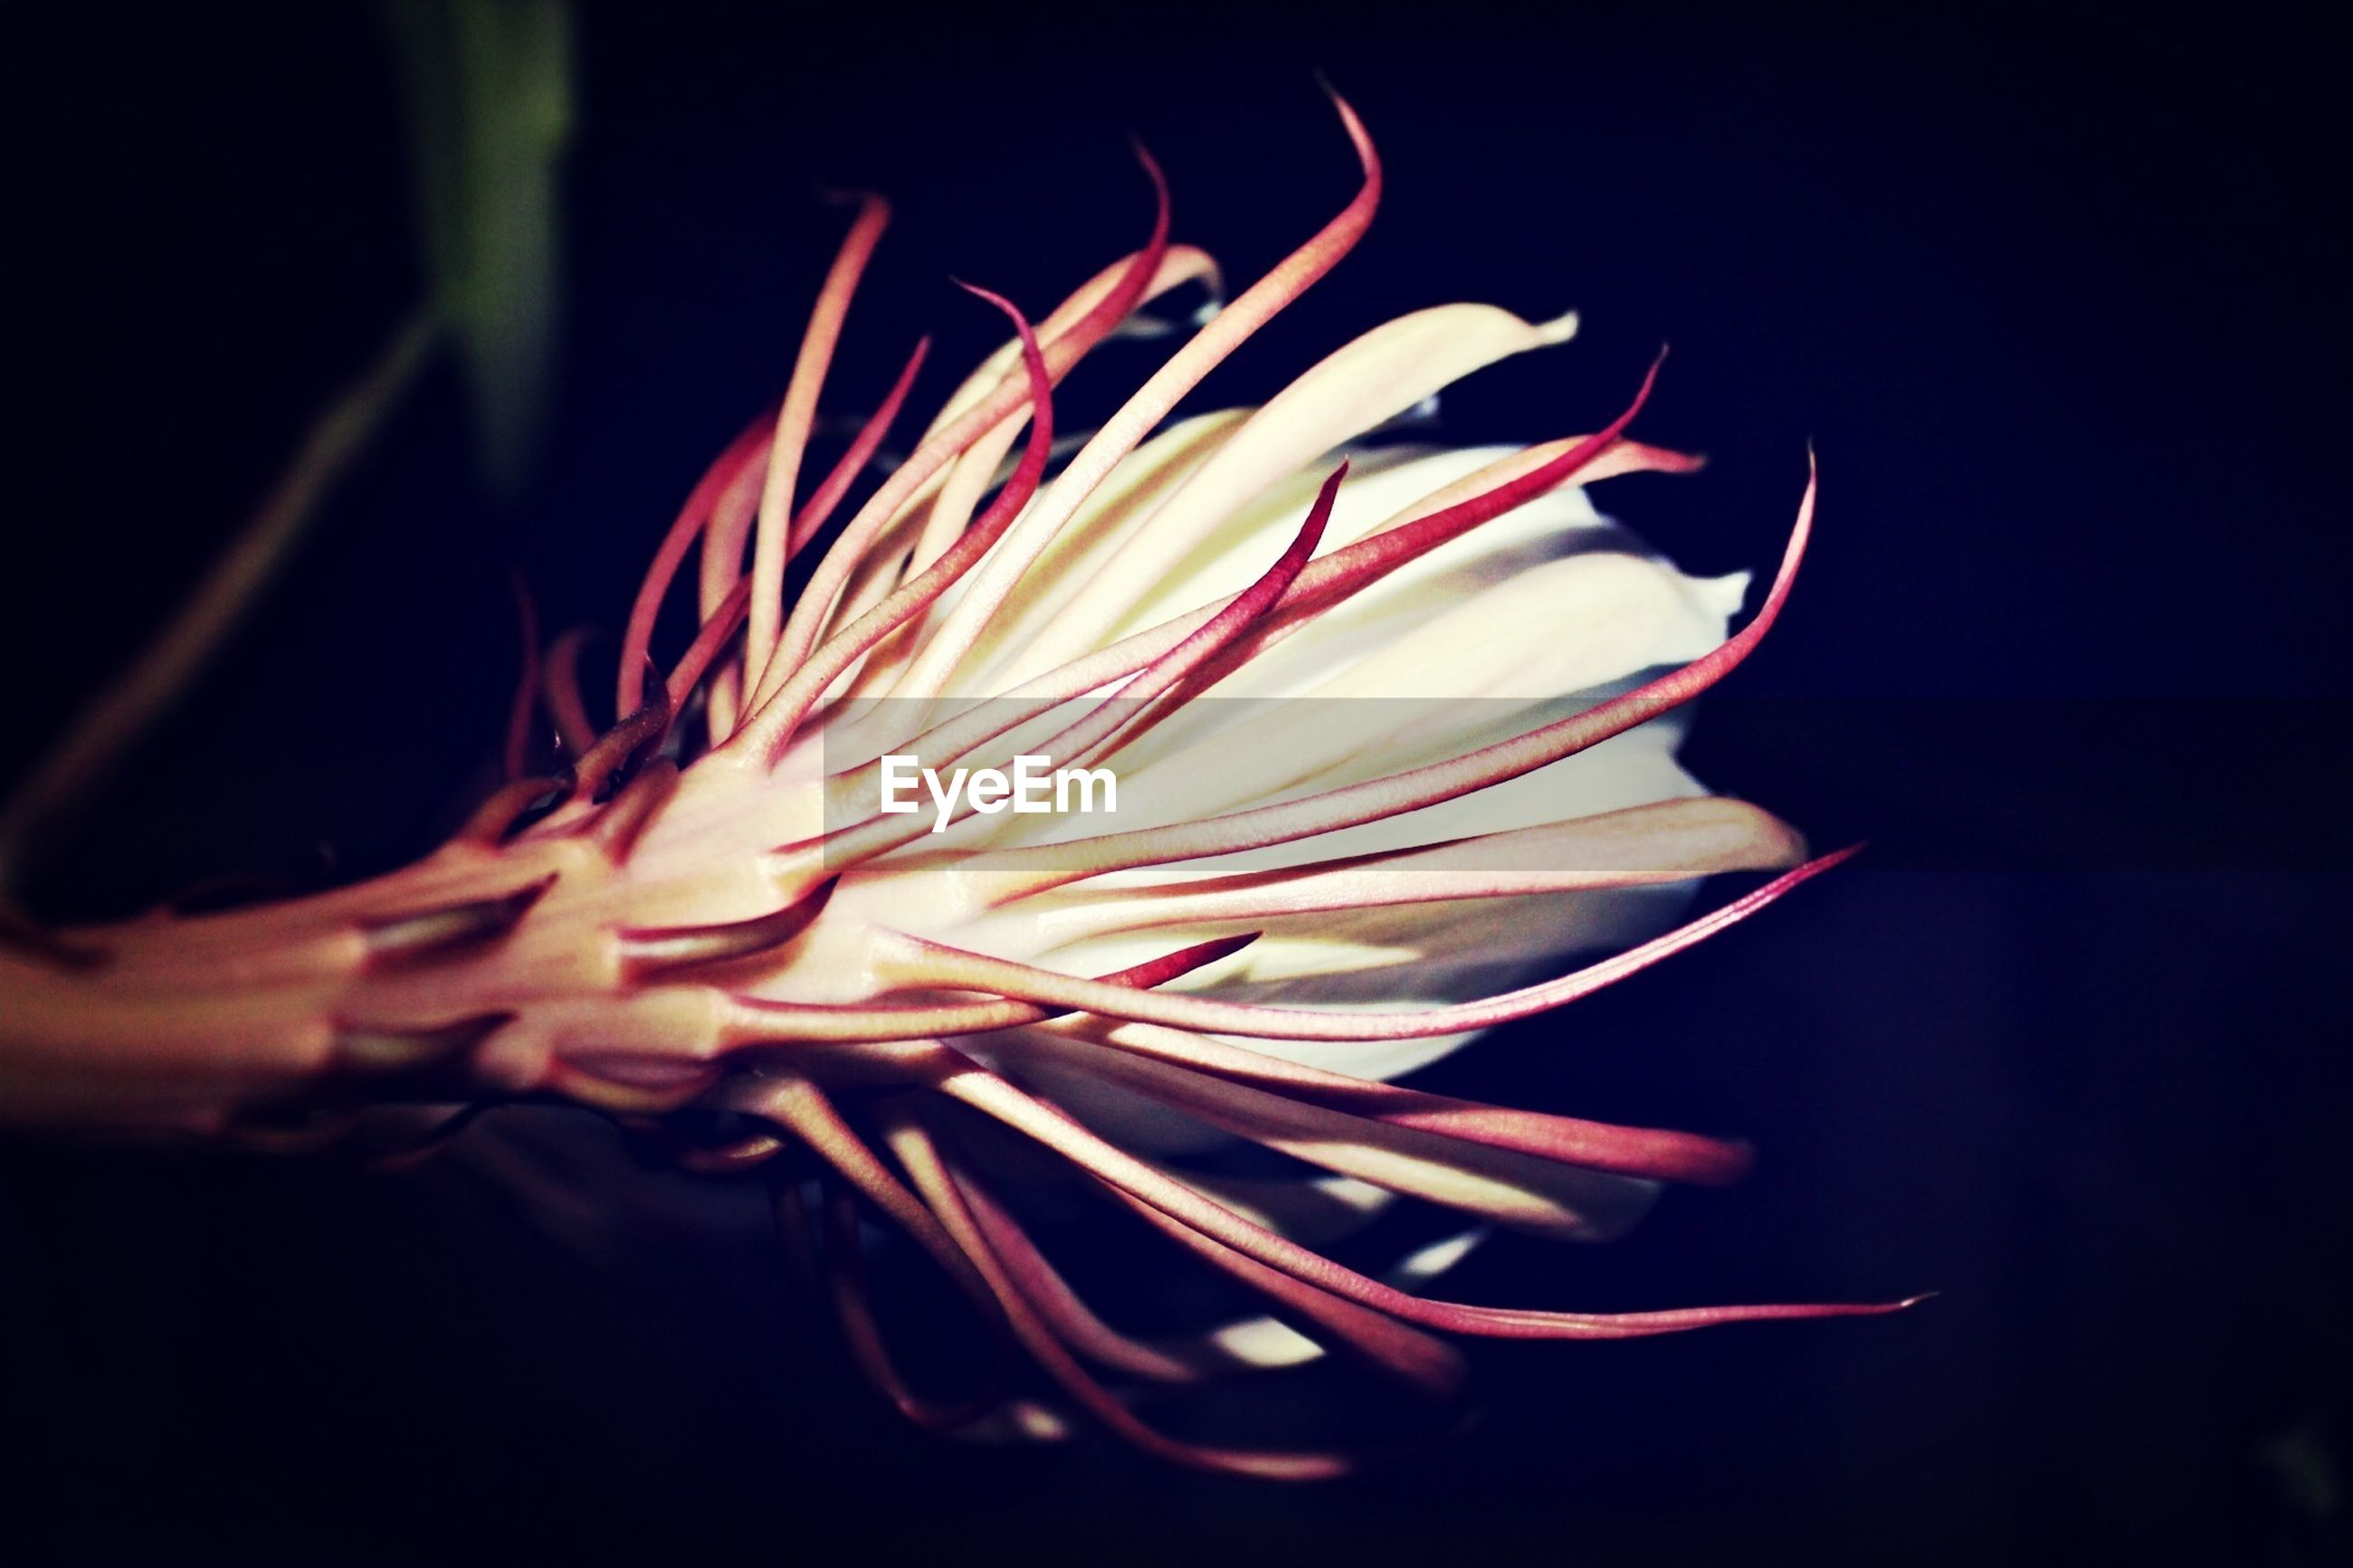 flower, petal, flower head, black background, freshness, fragility, studio shot, single flower, close-up, beauty in nature, growth, nature, pollen, stamen, night, plant, blooming, selective focus, no people, focus on foreground